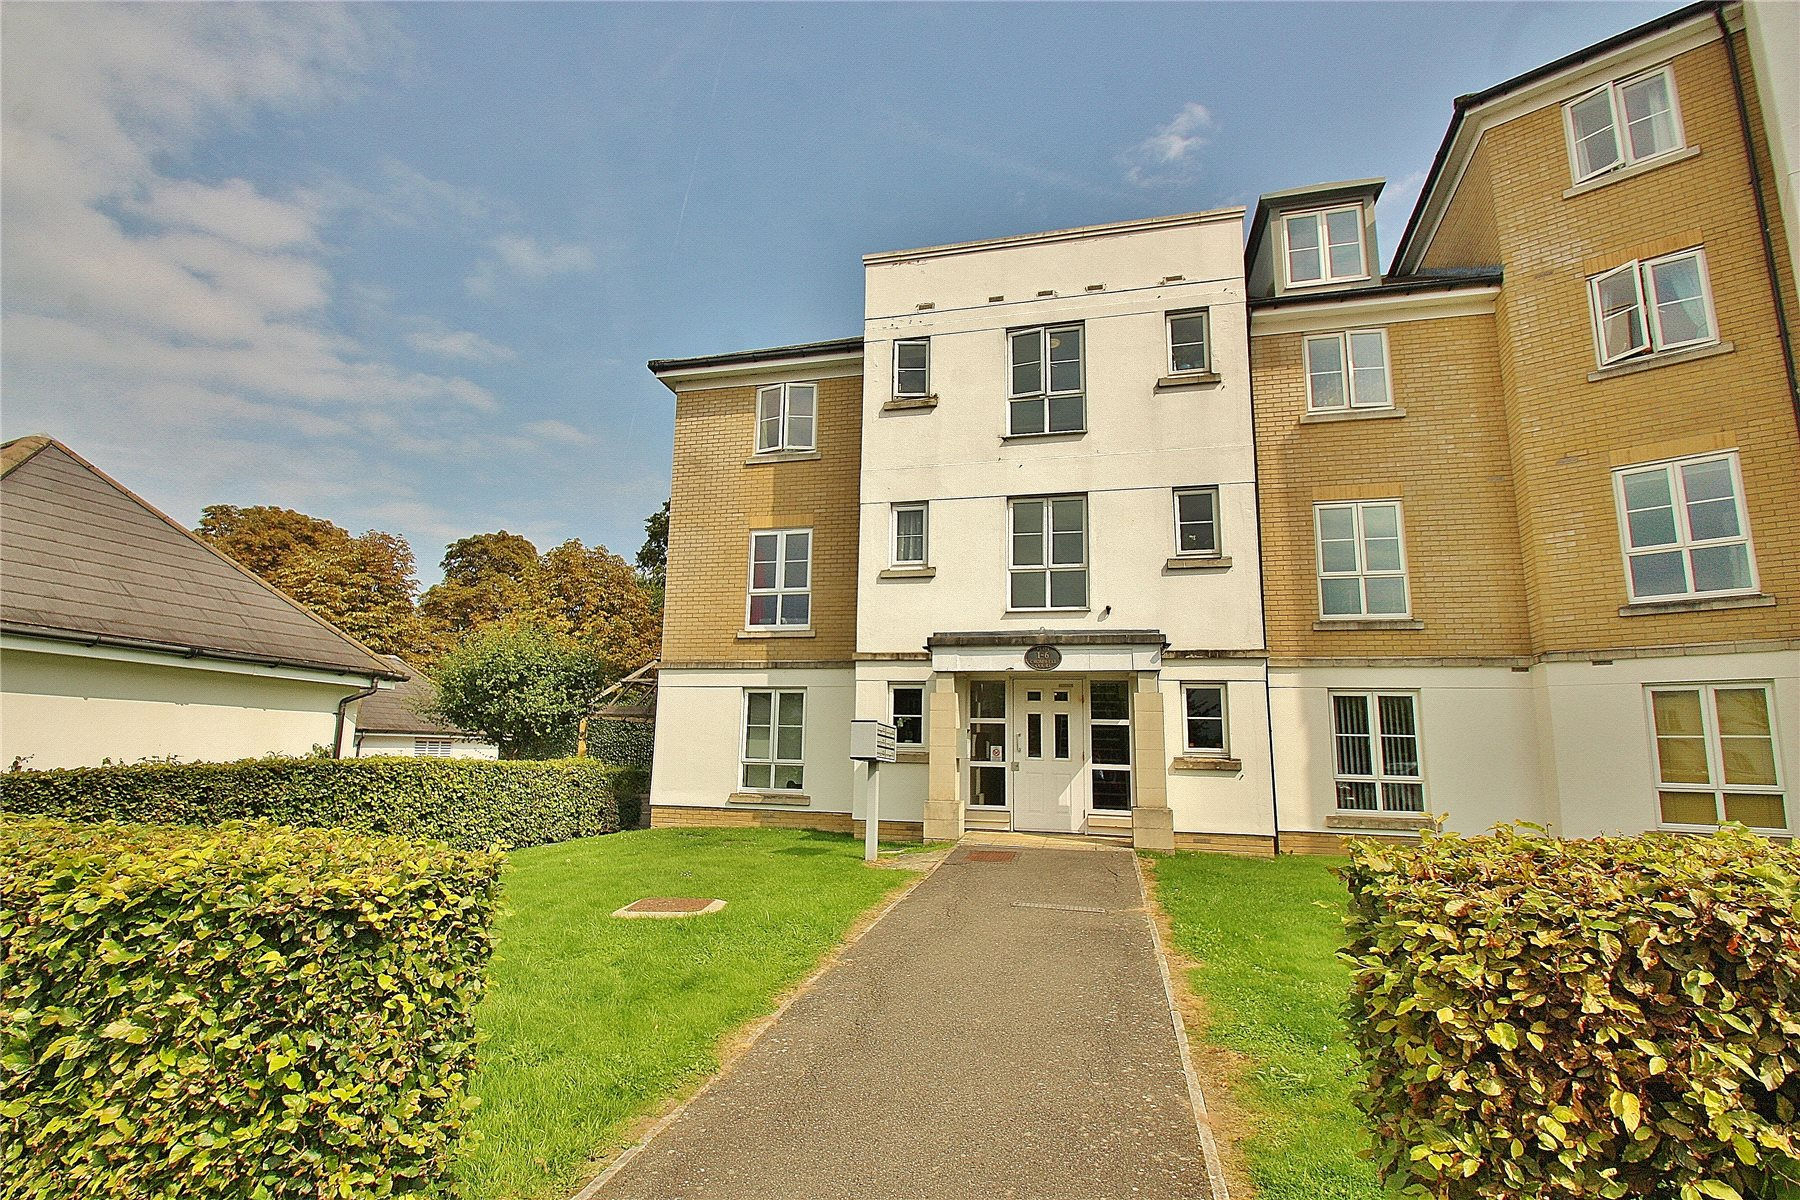 2 Bedrooms Apartment Flat for sale in Cromwell Court, Tudor Way, Knaphill, Woking, GU21